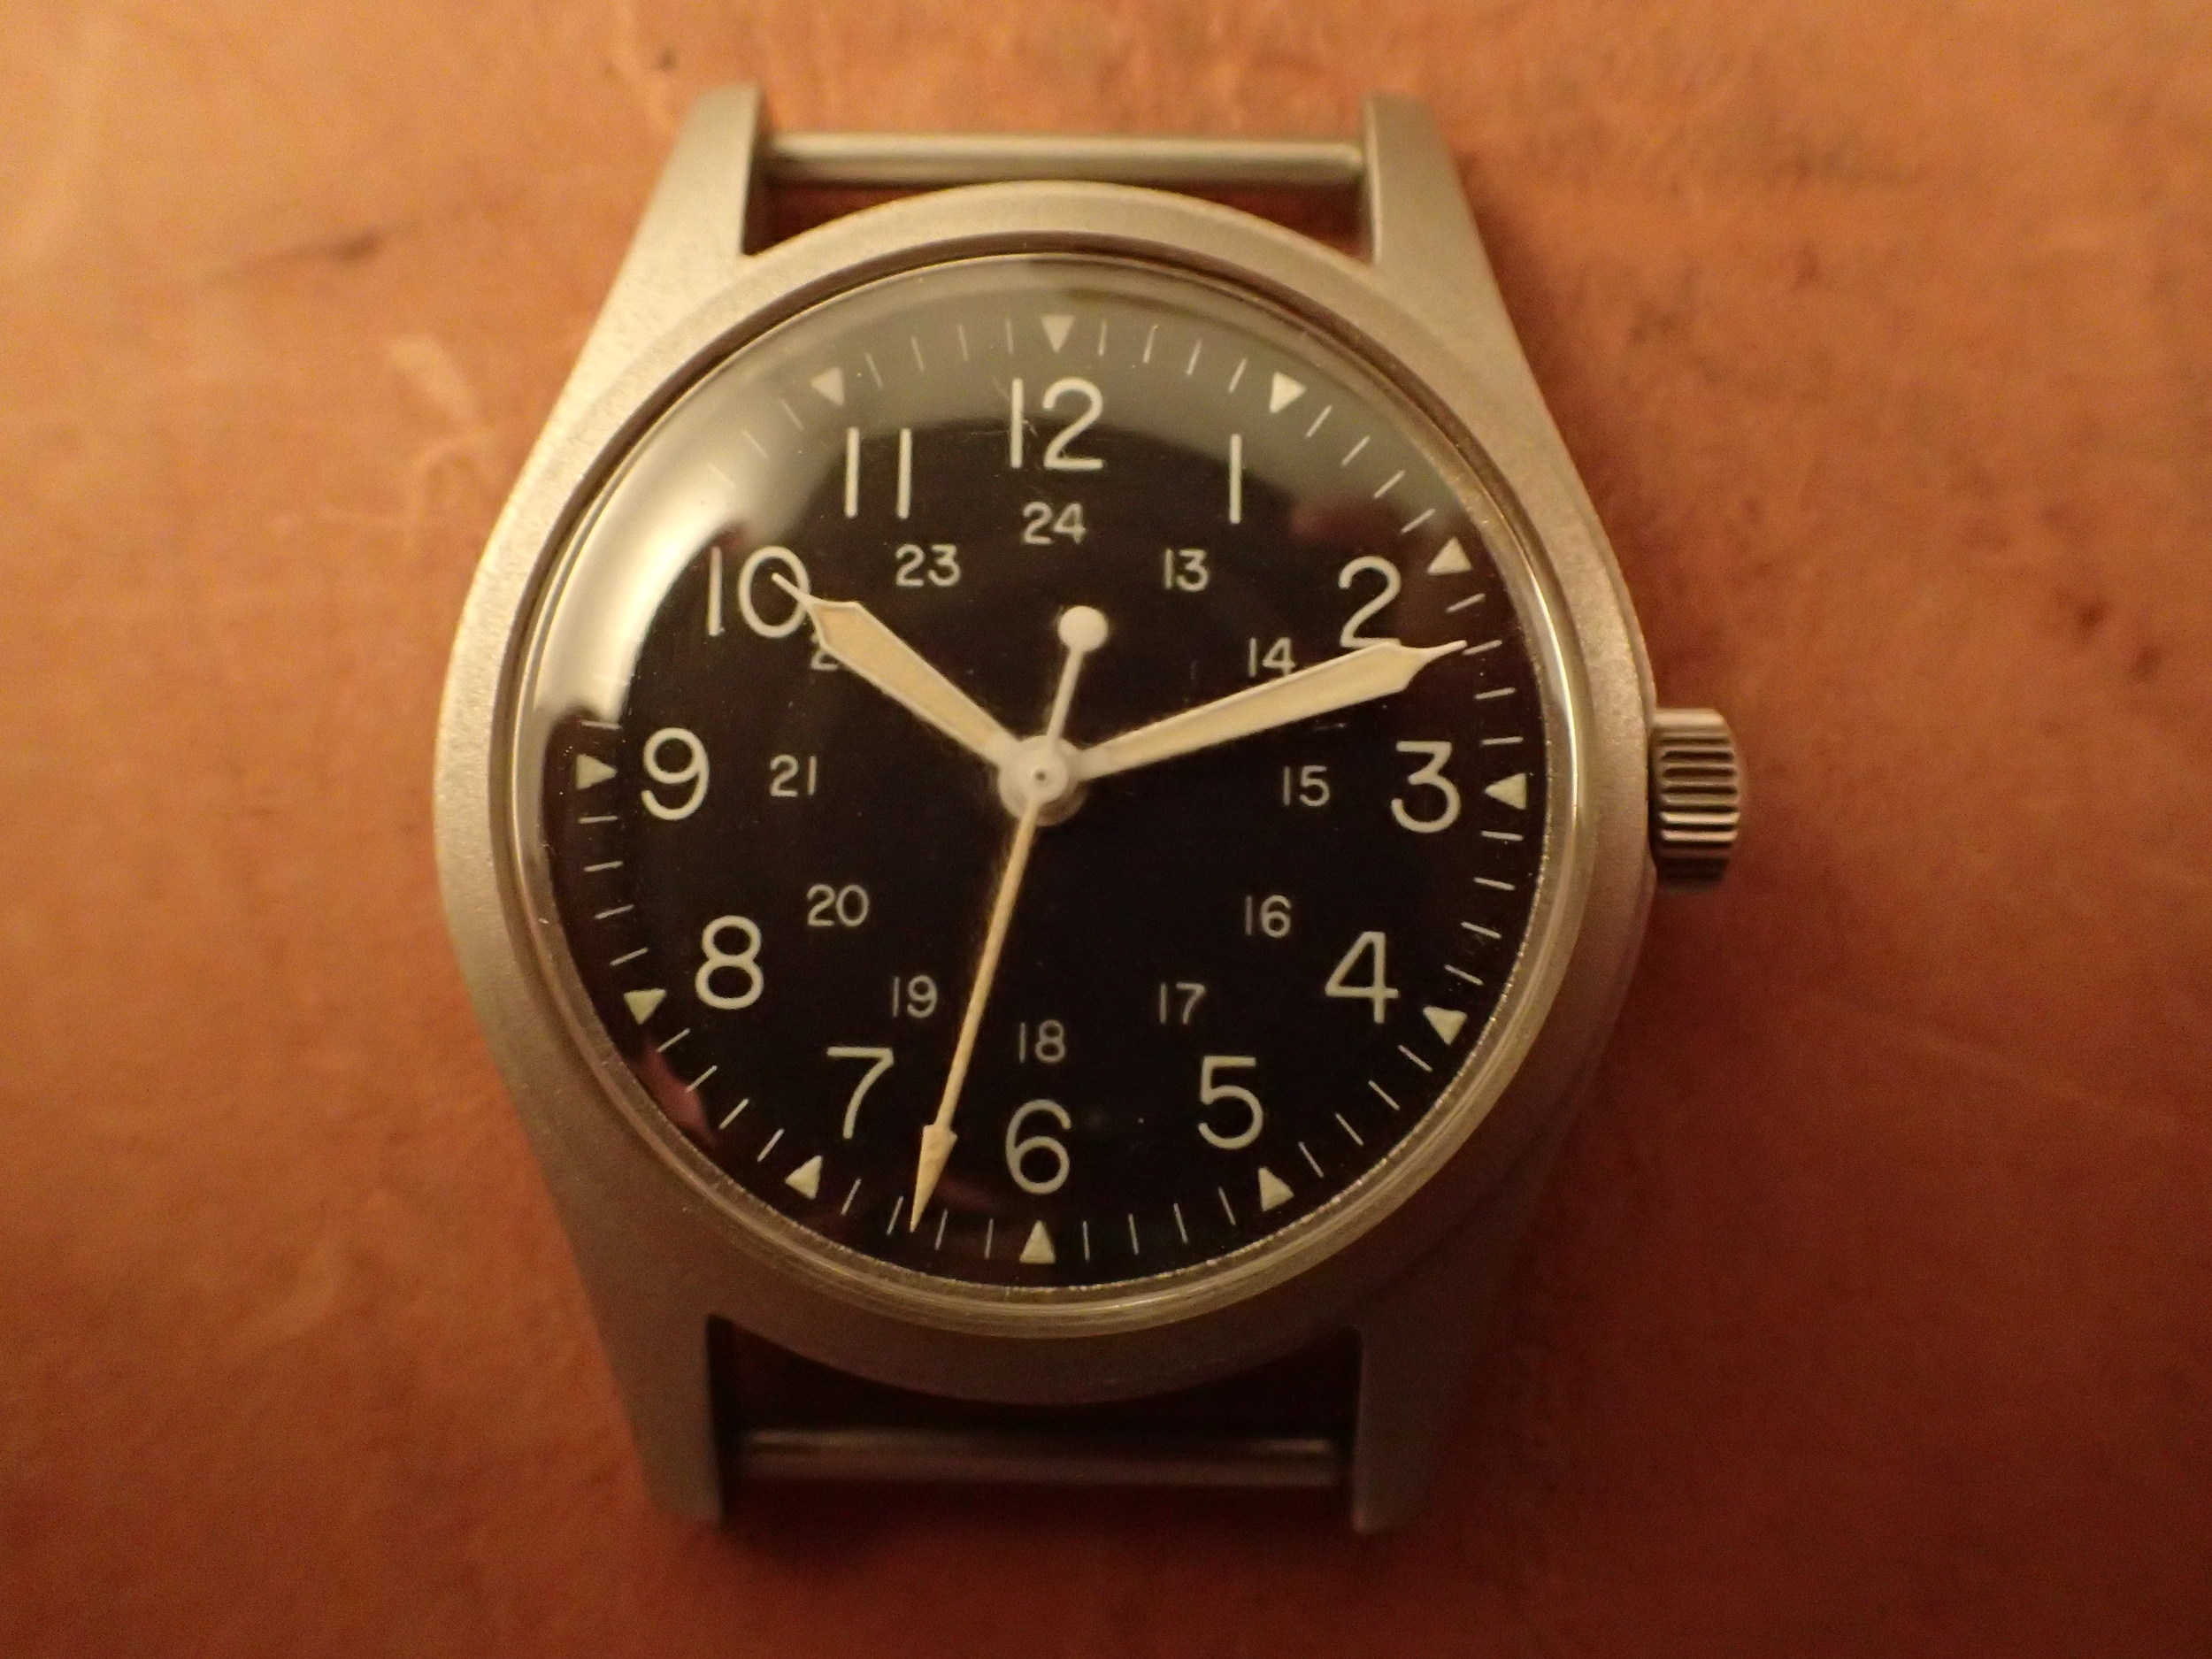 GG-W-113 with thin font dial. The specification called for a sterile dial to make it more legible.